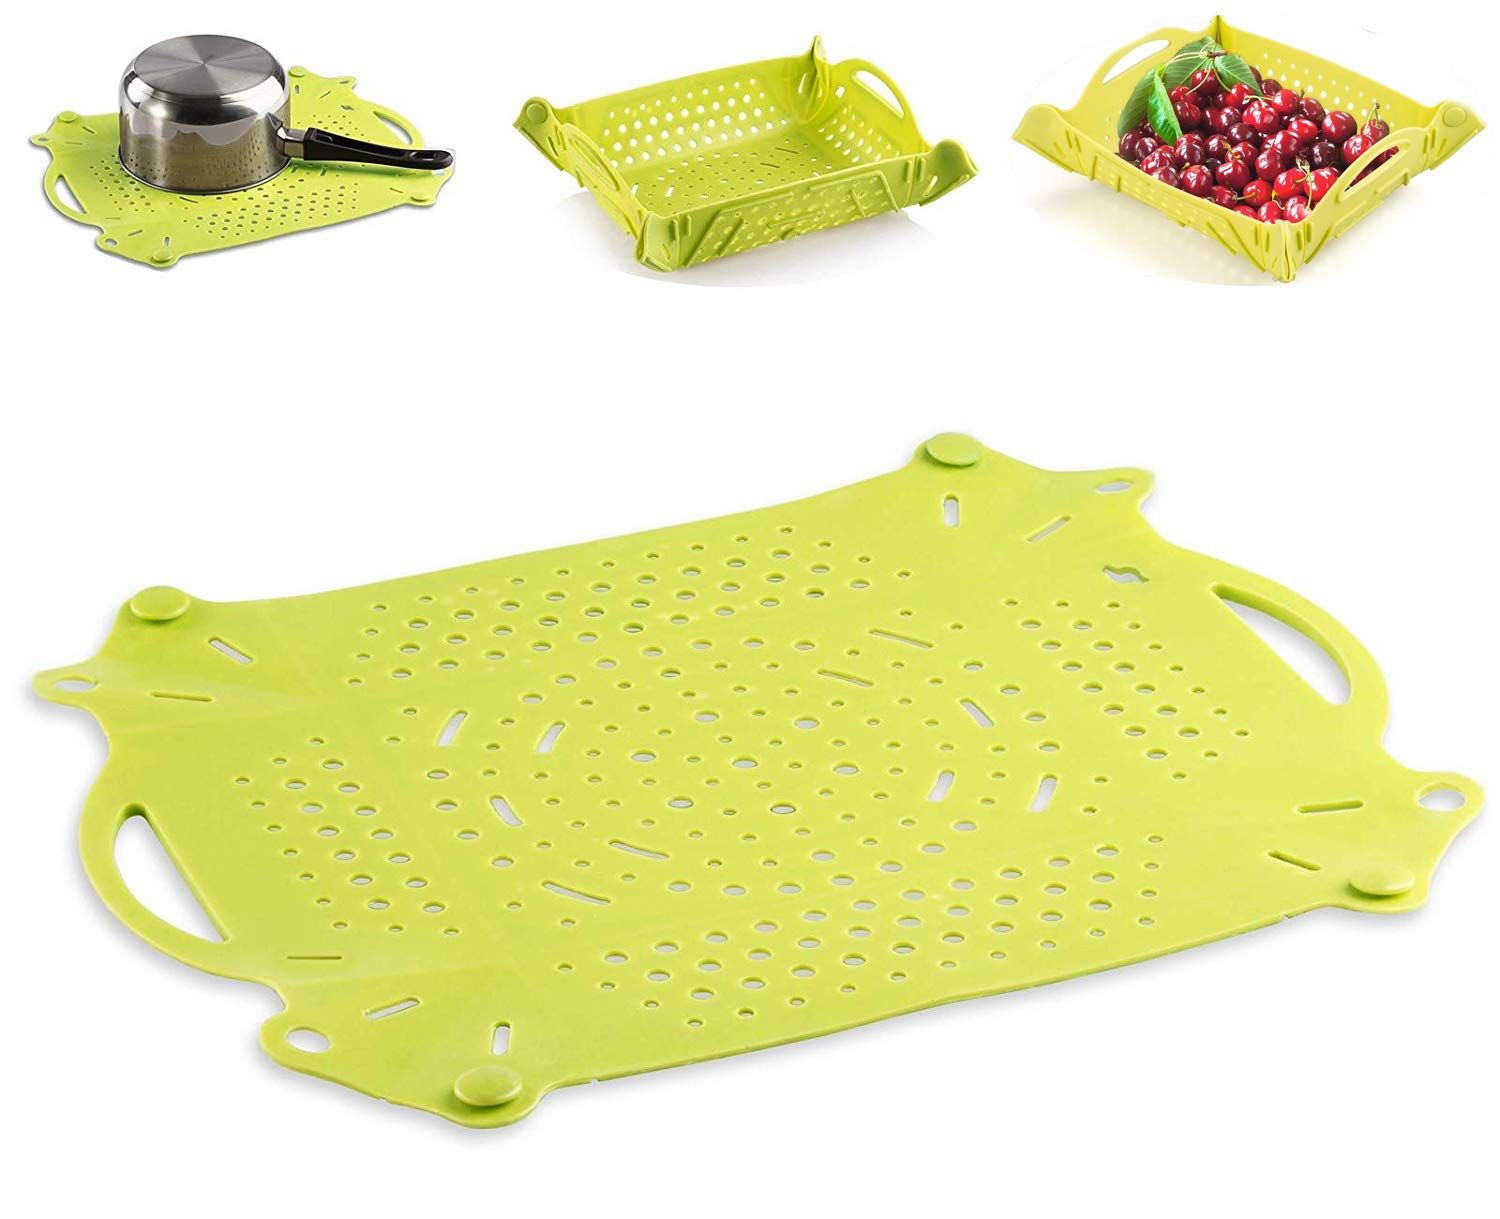 LUXEAR Multifunctional Silicone Drying pad,Silicone Pot Holder,Dish Drying Mat,Countertop Mat Drain pads Suitable for Camping Home Kitchen Outoor Non-slip Durable Green